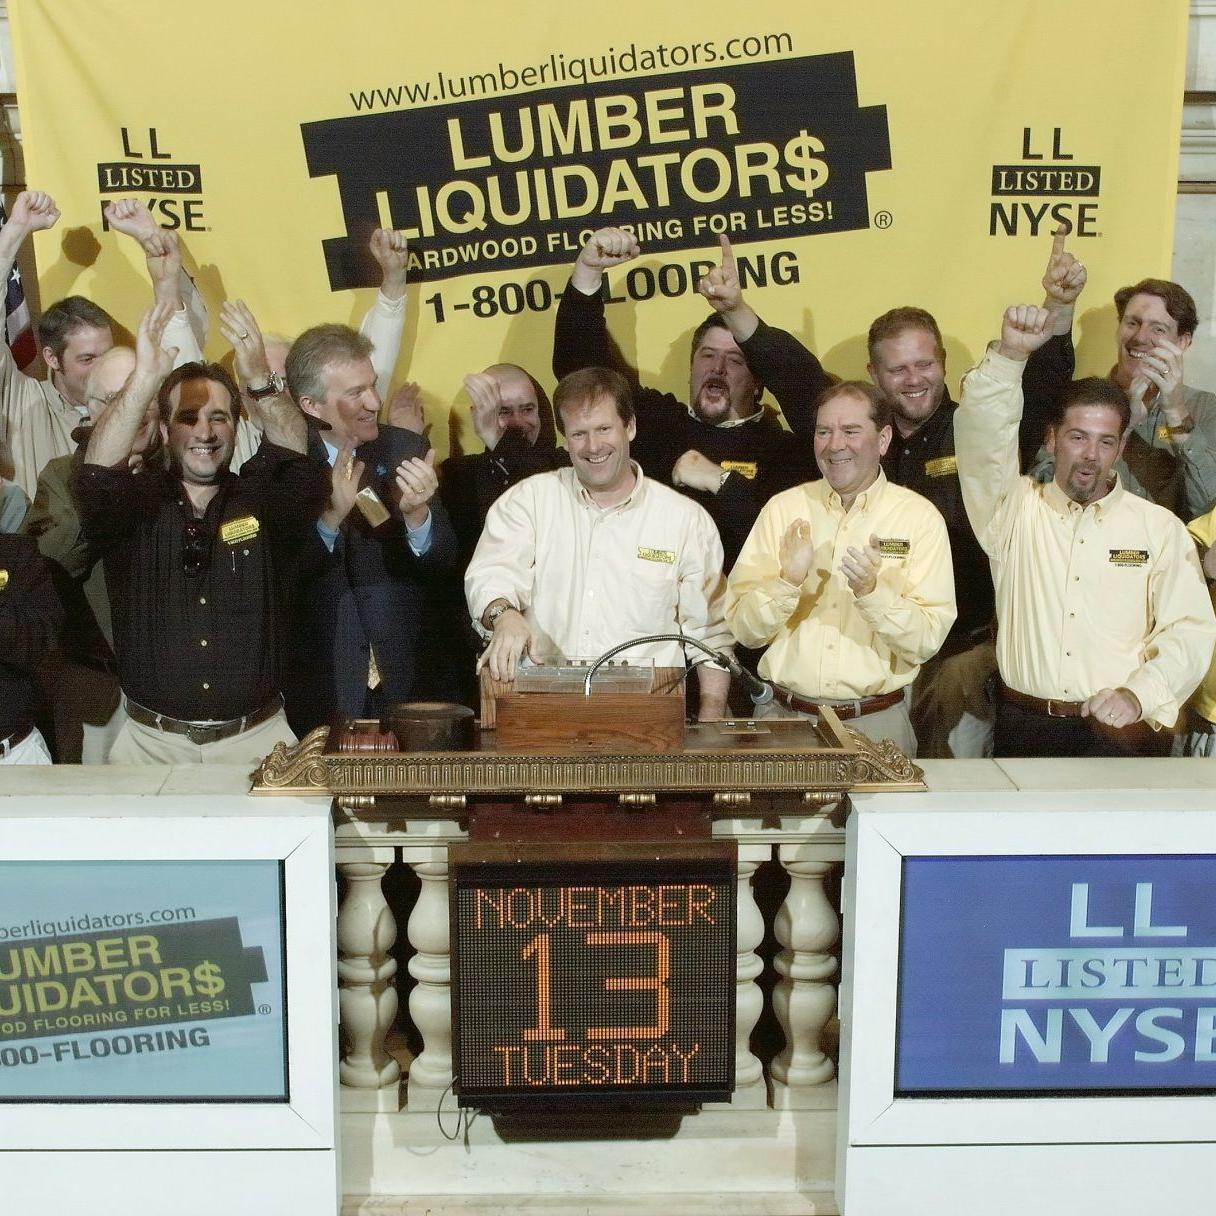 Lumber Liquidators founder interested in exploring